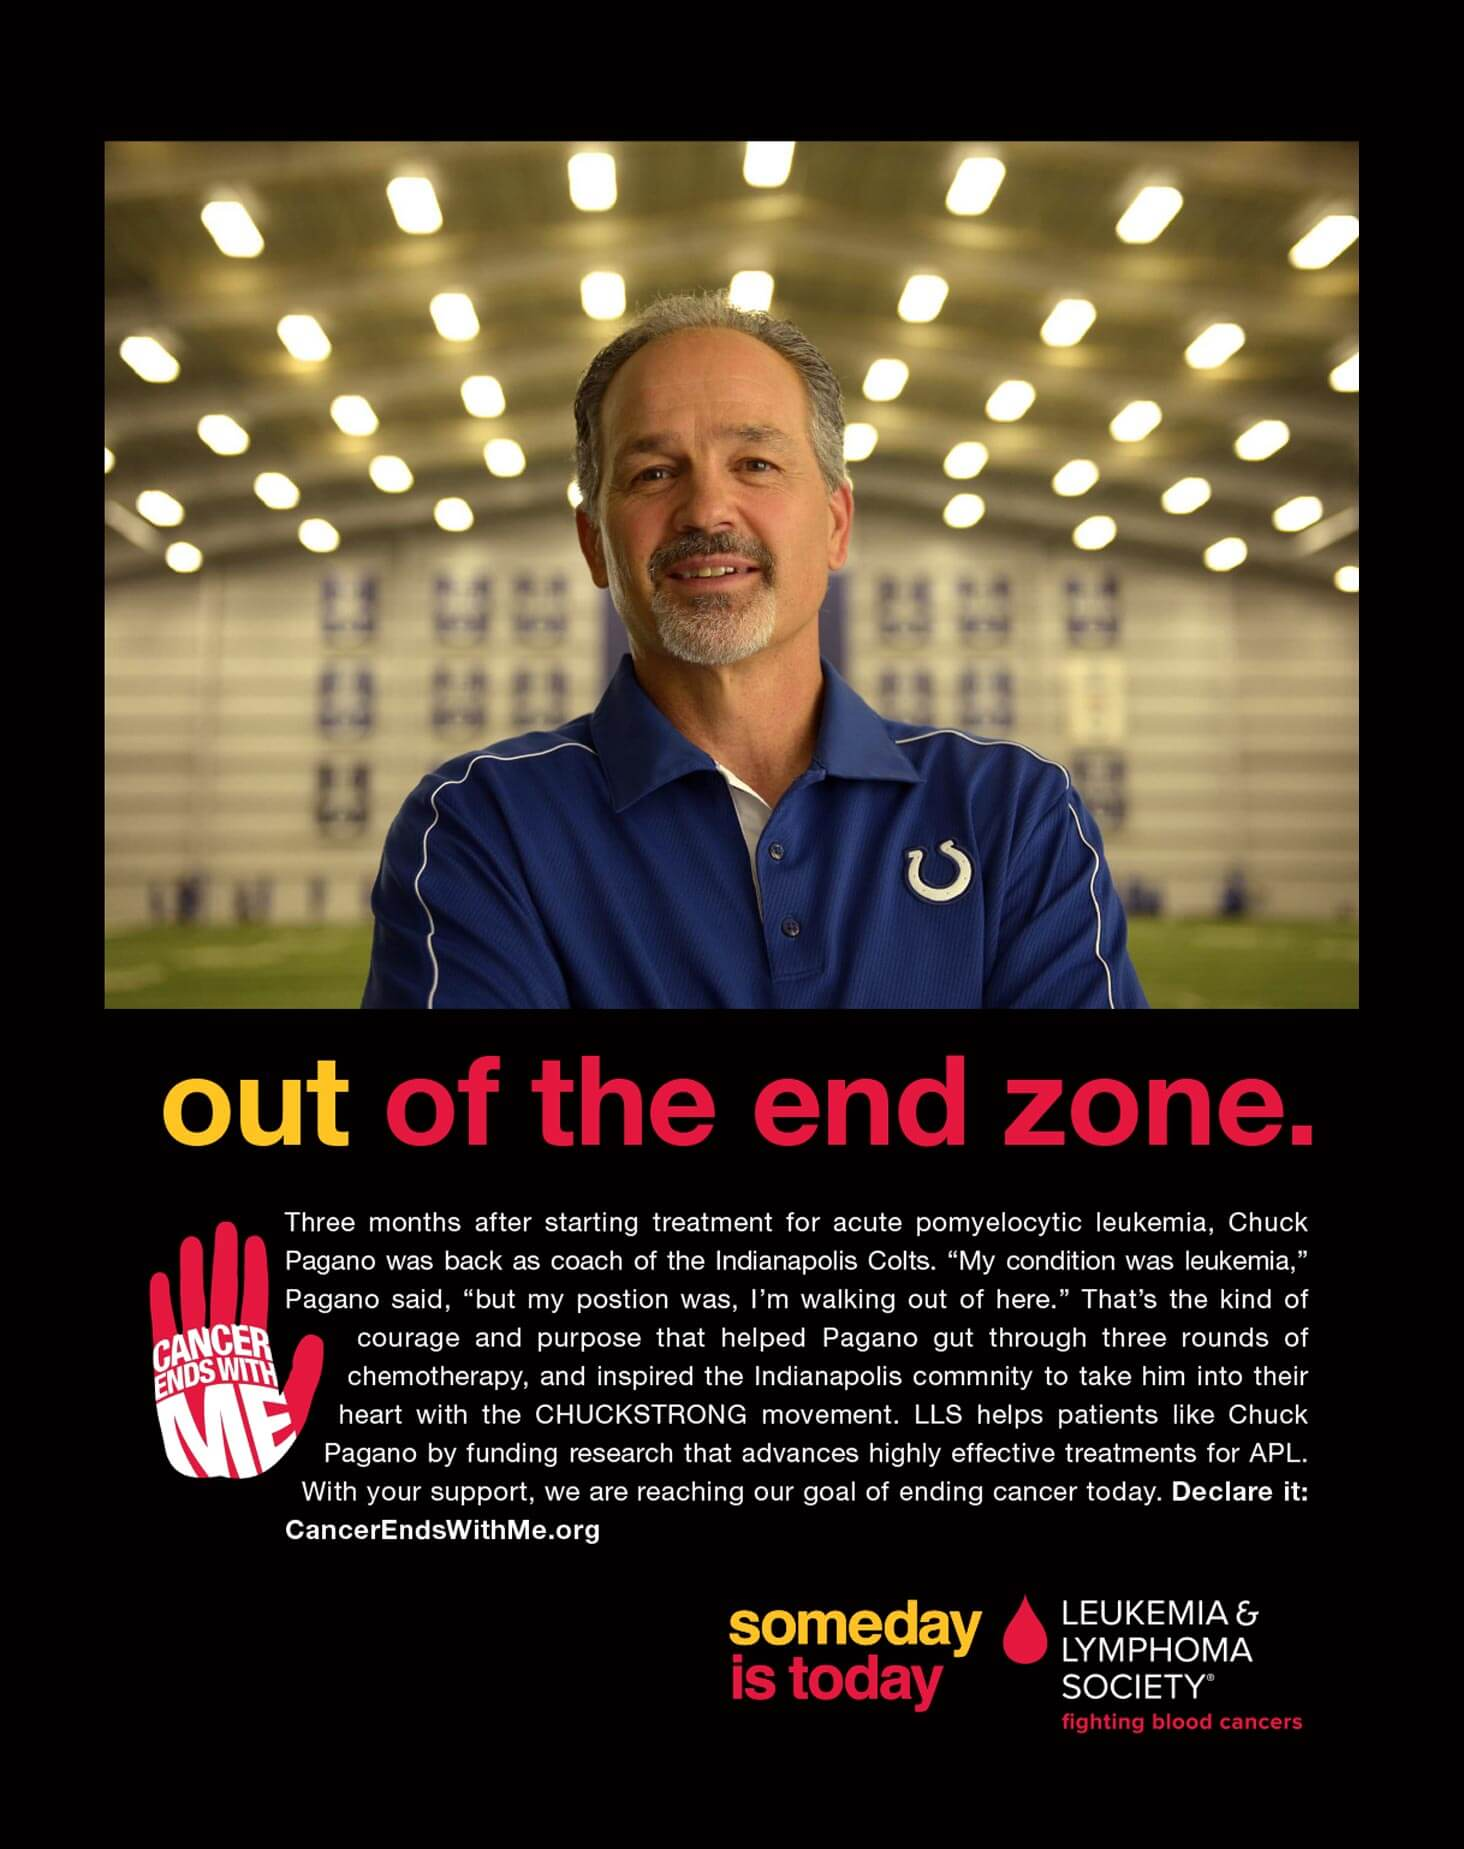 Leukemia & Lymphoma Society. Out of the end zone